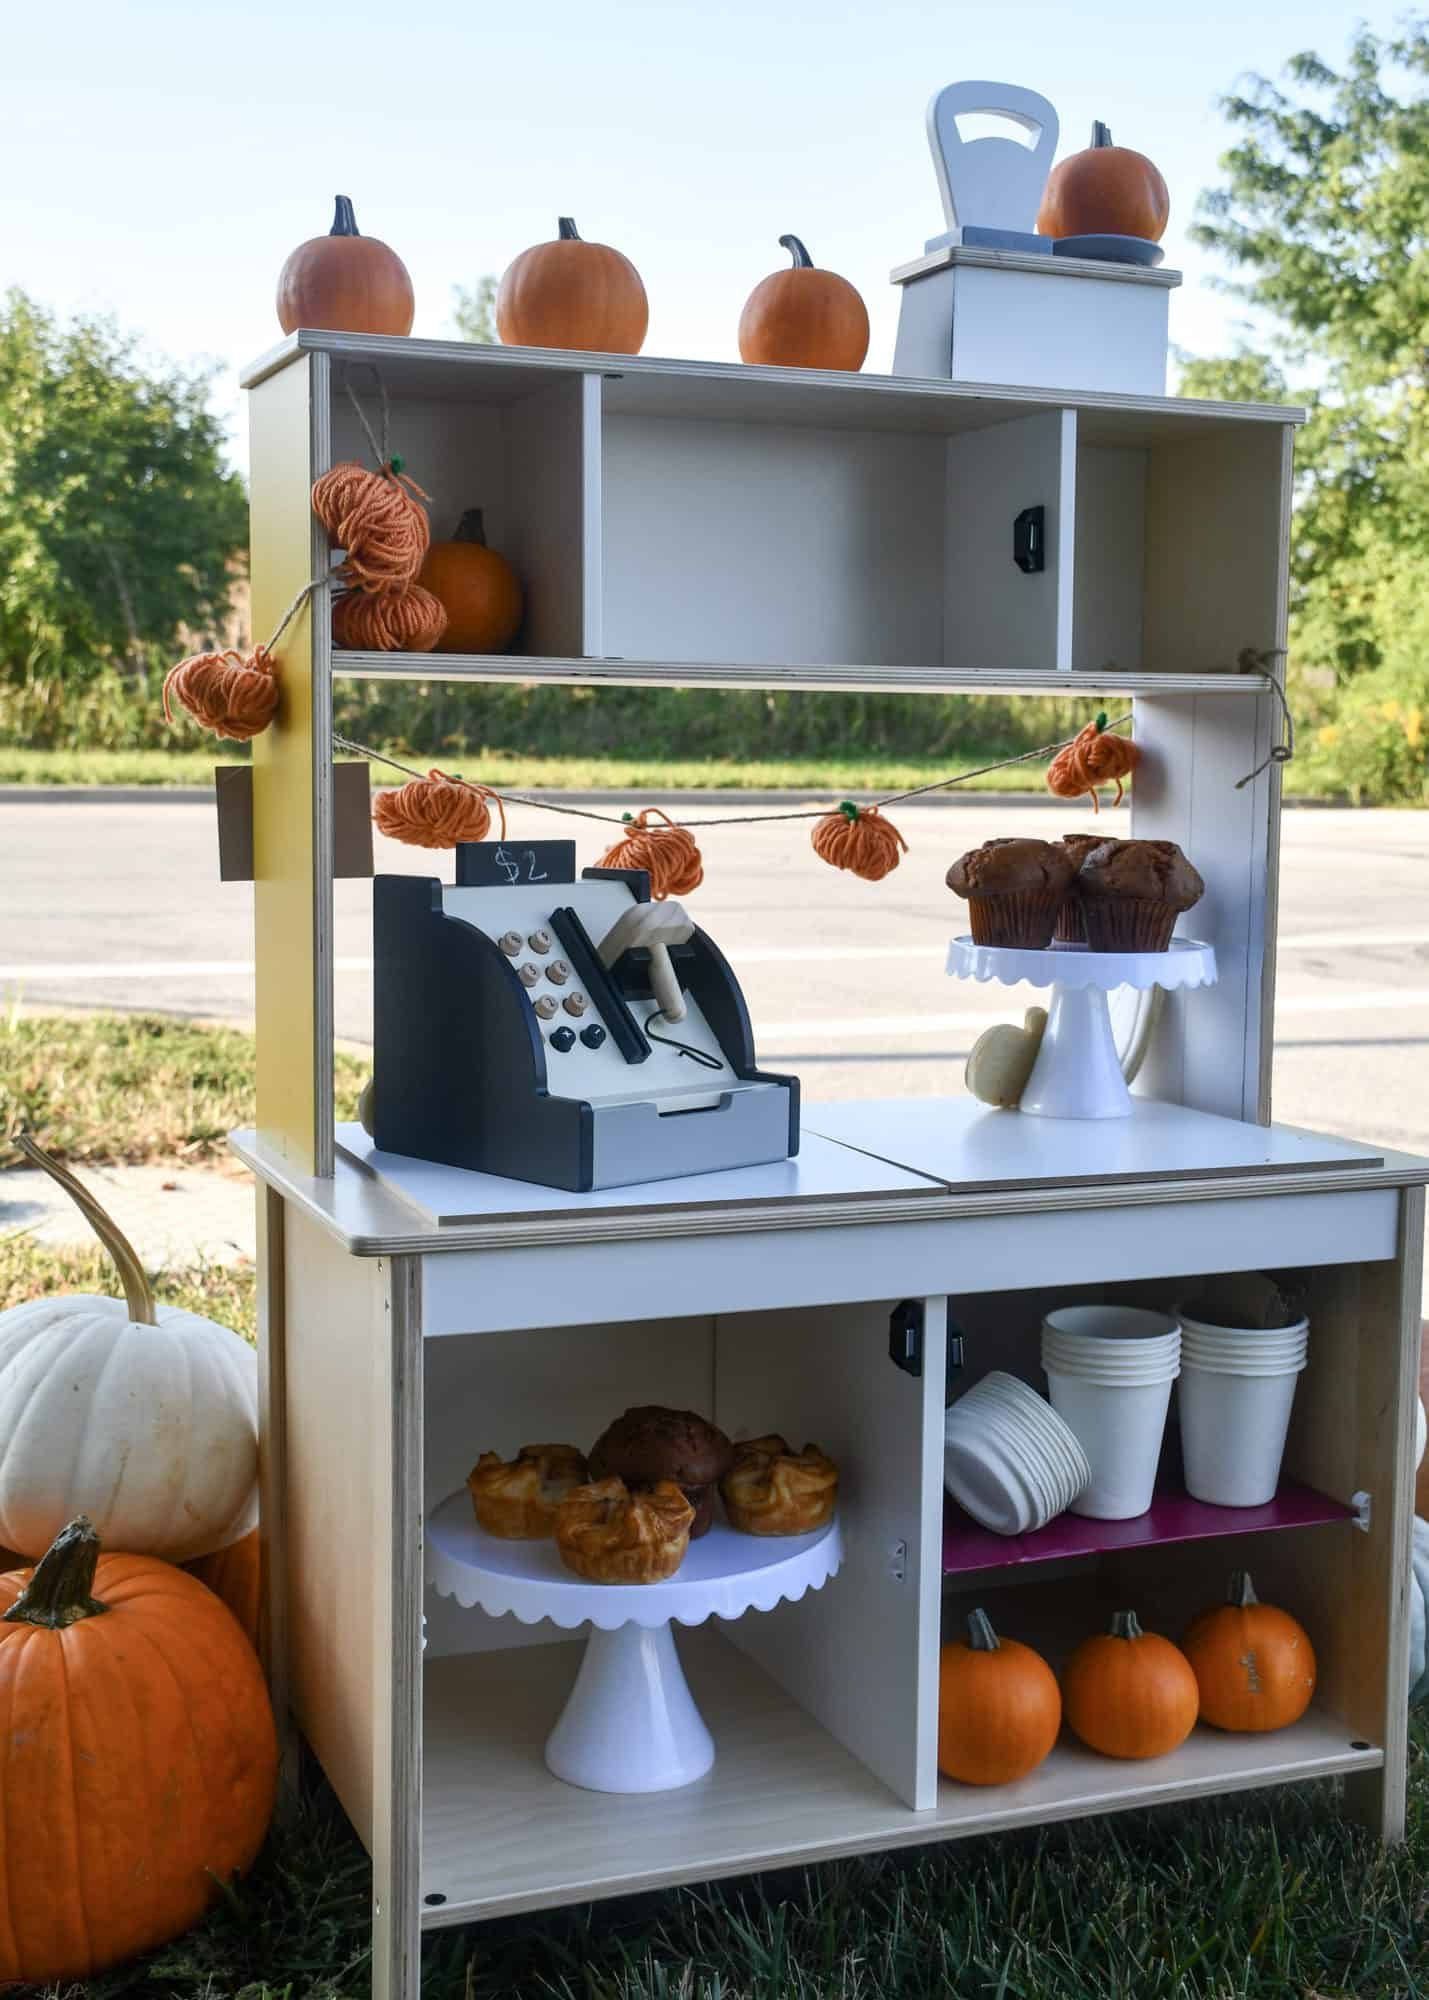 Inside of pumpkin stand, can see the treats, back of cash register, cups and pumpkins.